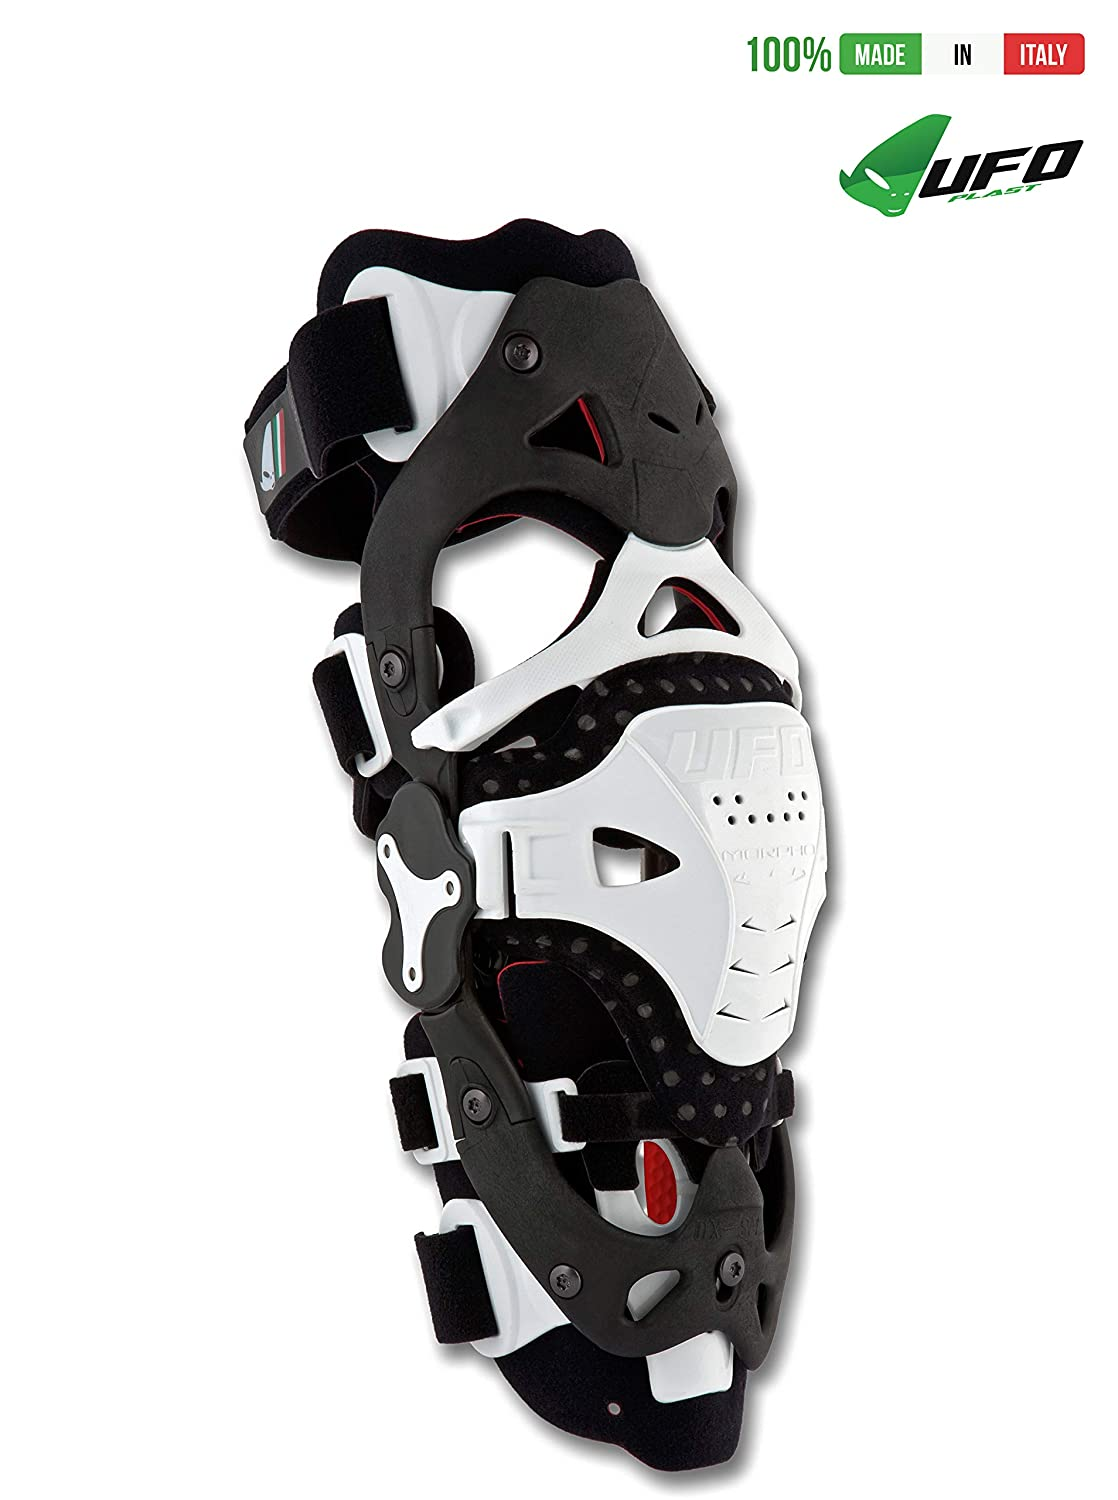 L//XL//Color White UFO PLAST Made in Italy KB001 MORPHO FIT LEFT SIDE Jointed Brace for Knee Protection